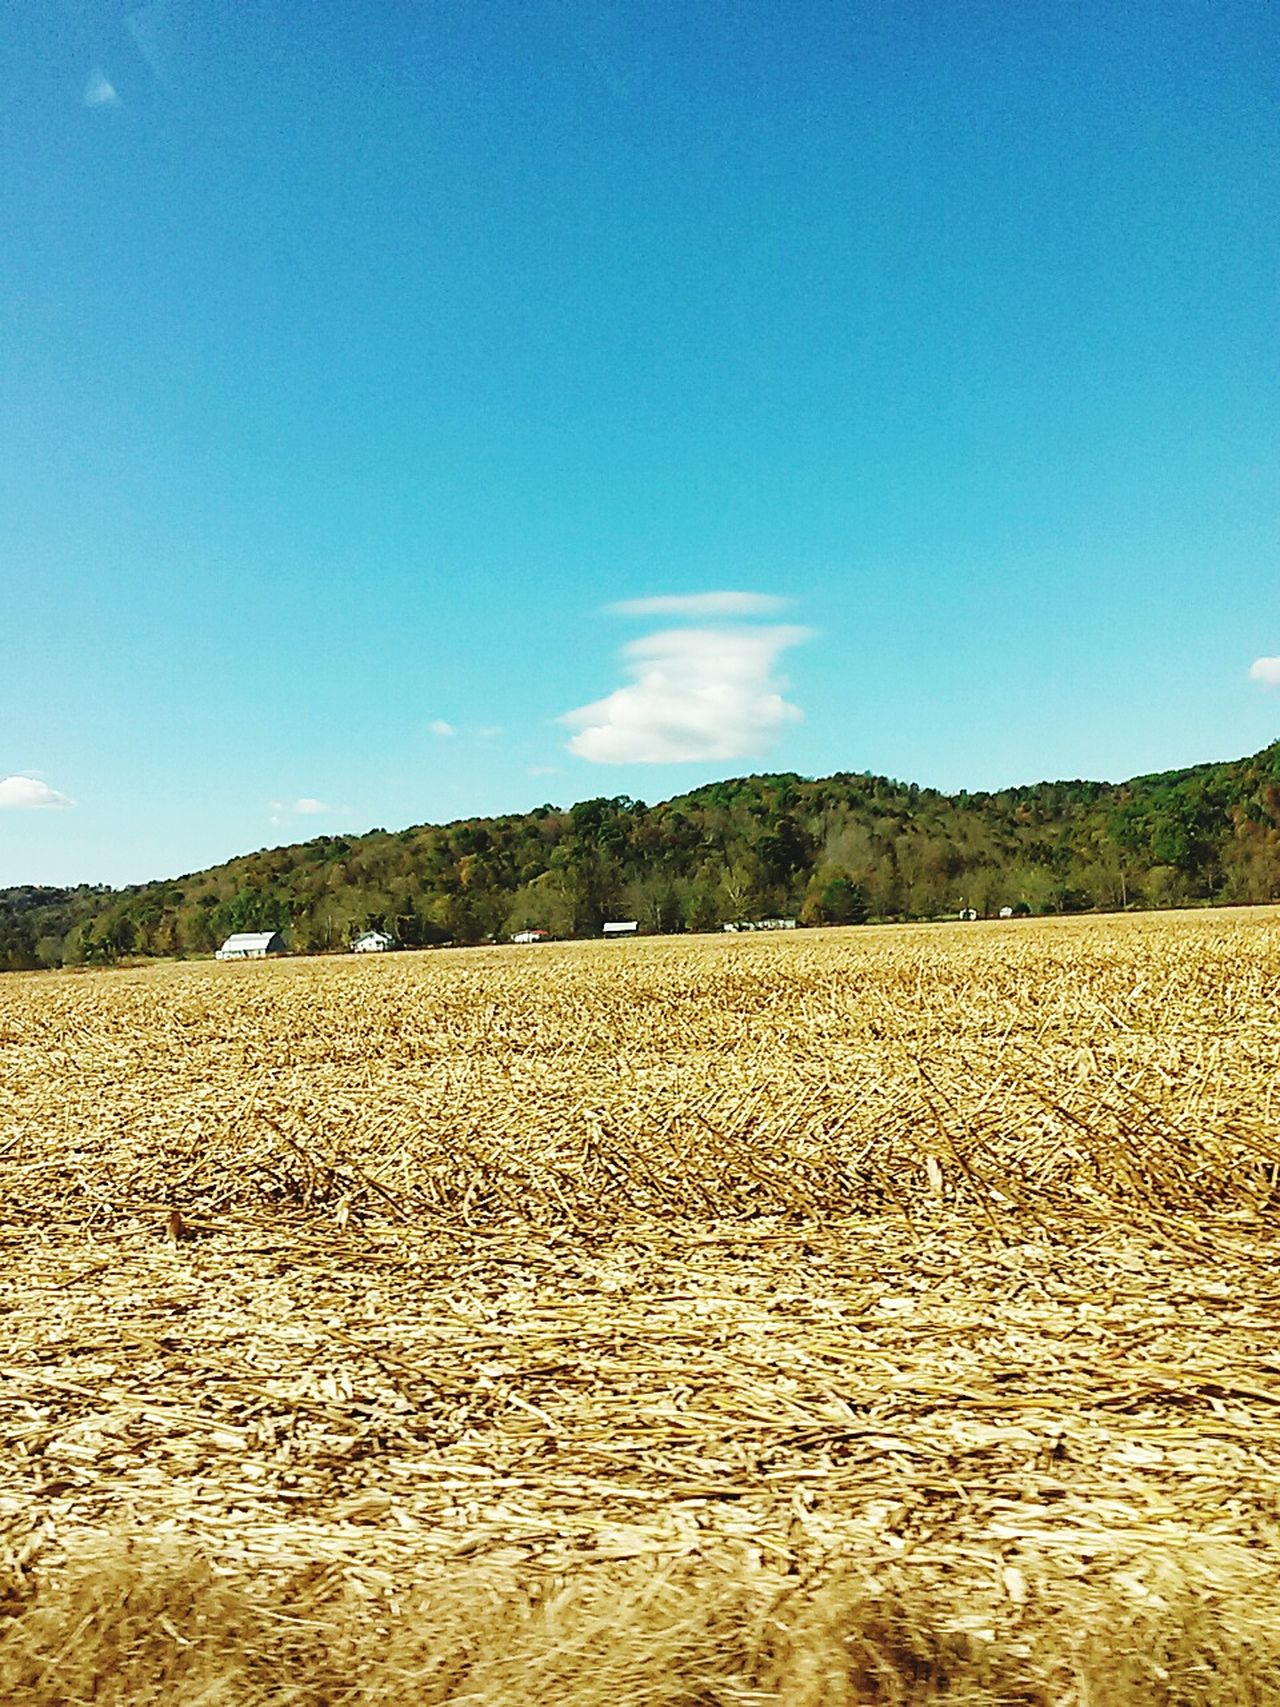 clouds Clouds And Sky Fields Of Gold Fall Colors Fall Time Farm Crops sky Sky And Clouds Taking Photos Hanging Out Hi! Relaxing